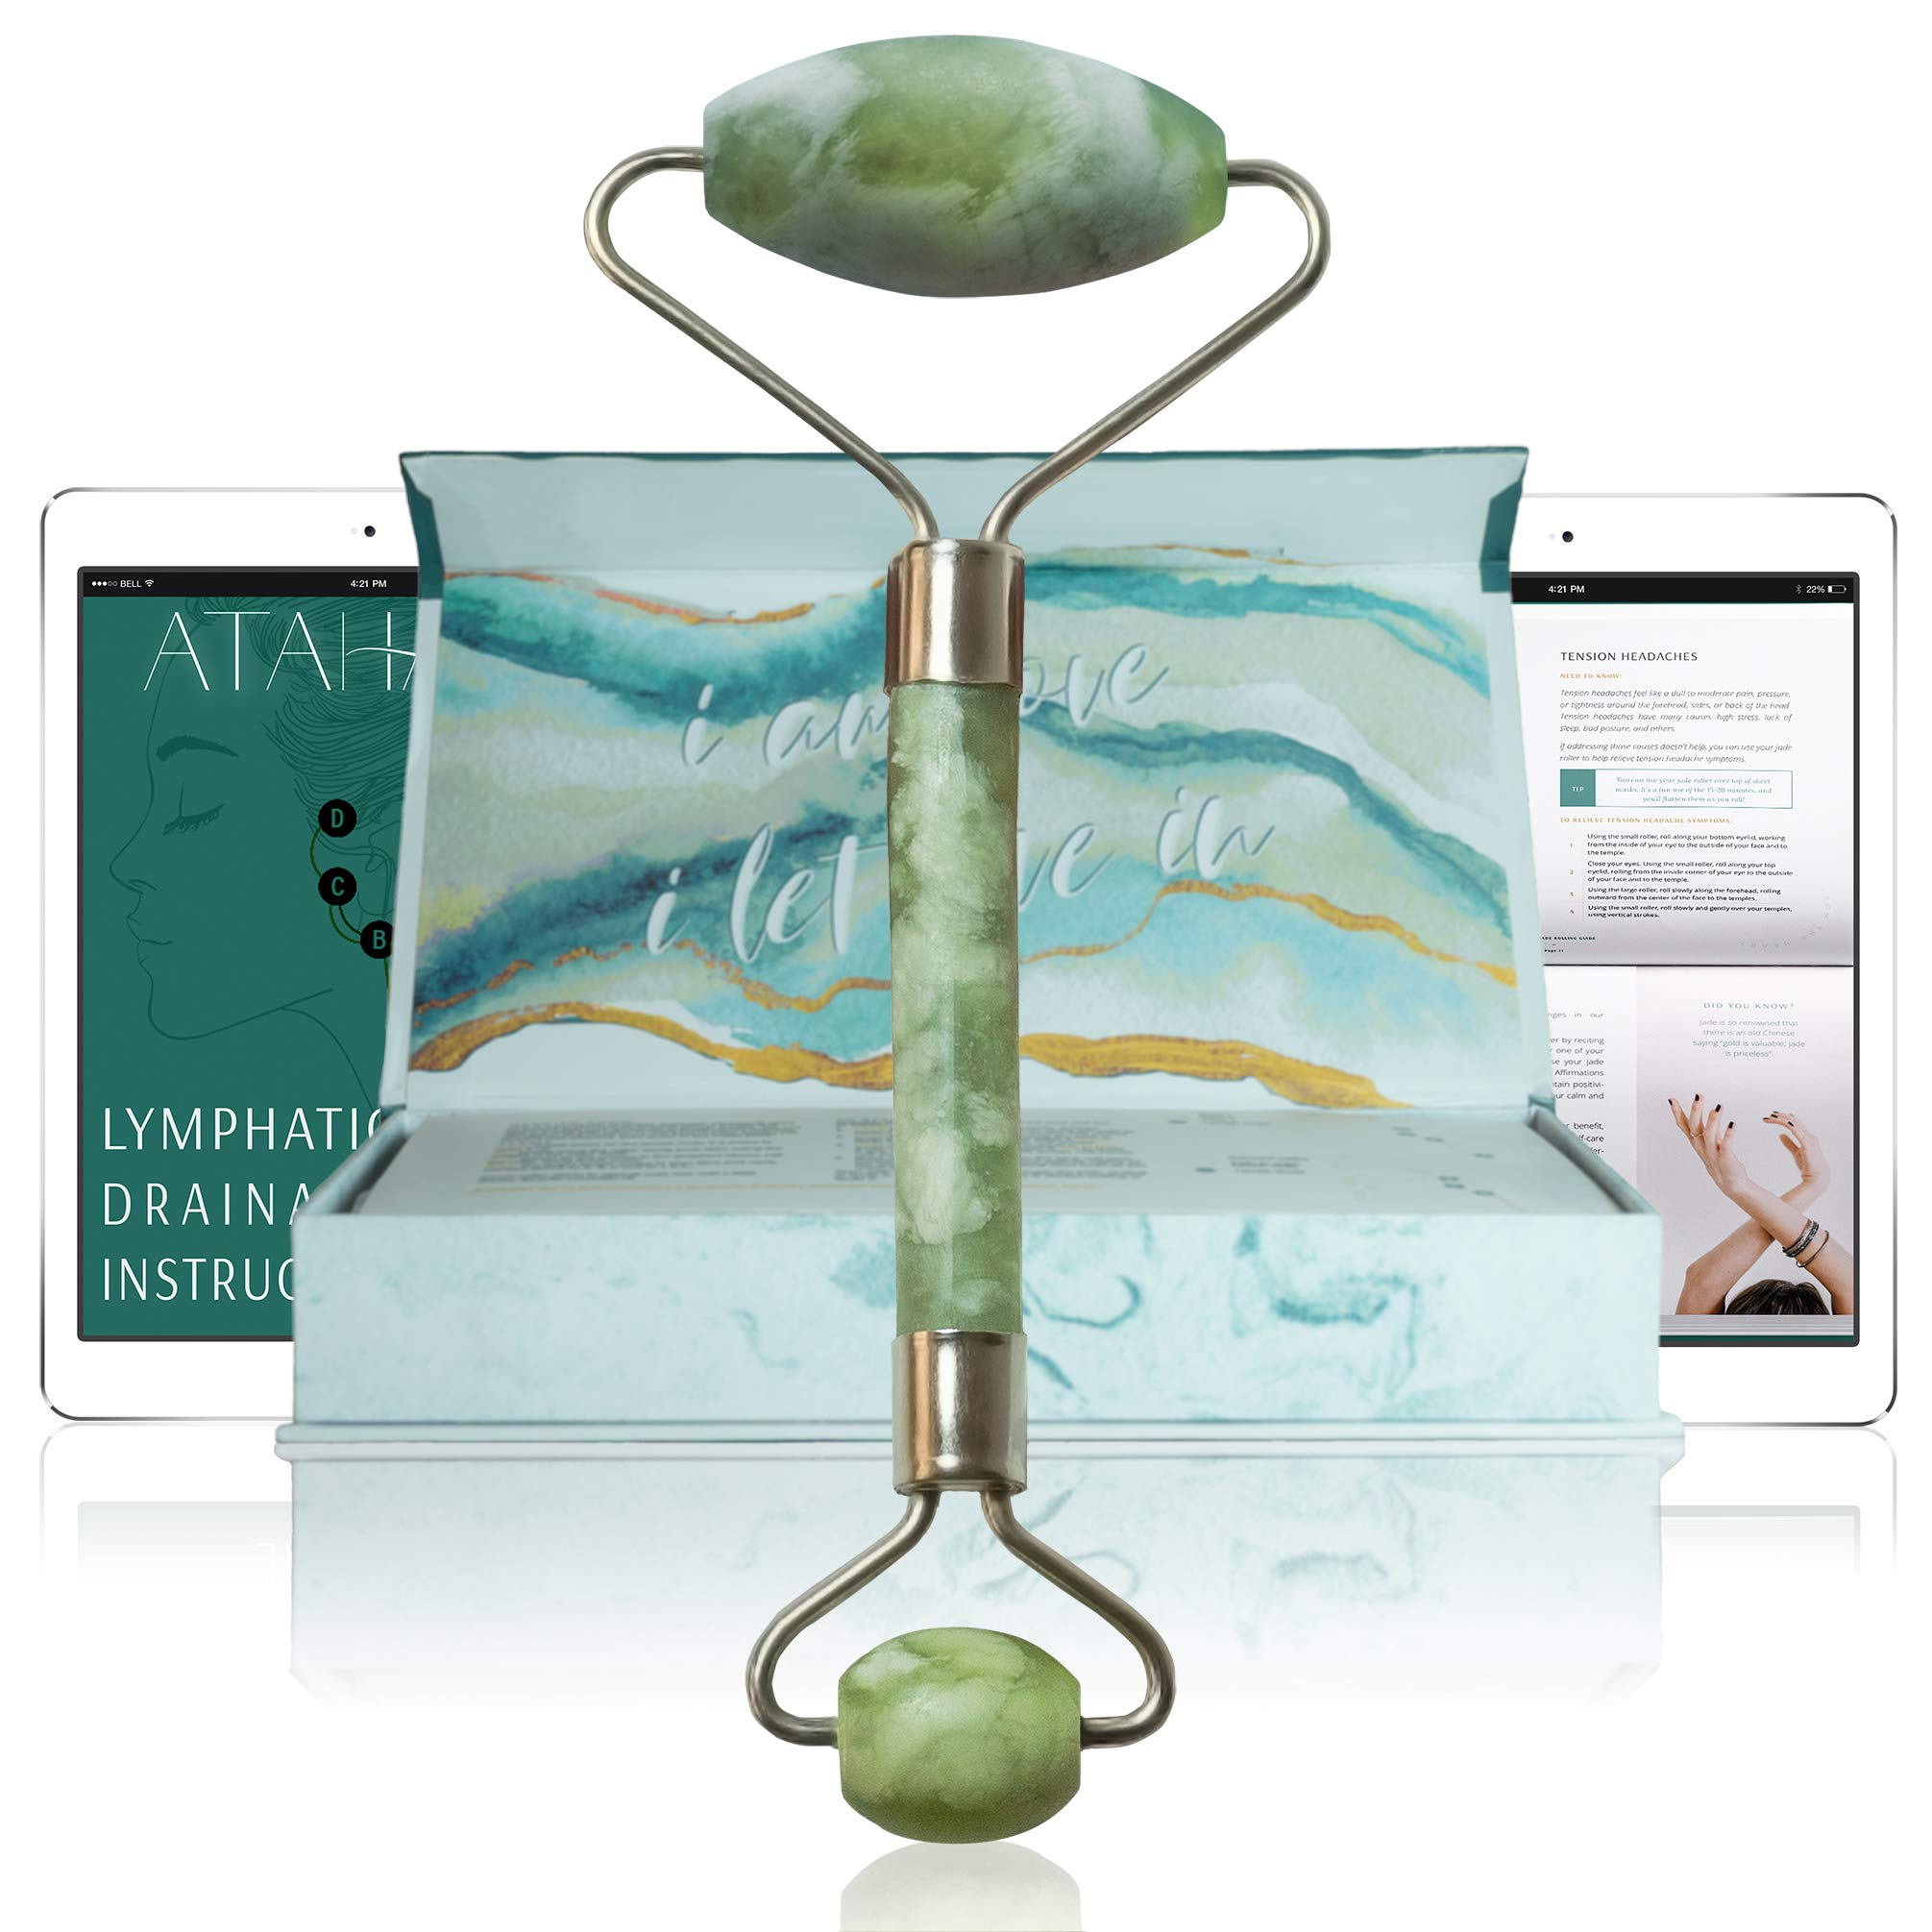 Lymphatic Drainage Jade Facial Roller & Gua Sha - 100% Real Jade - with Video Tutorial and eBook - Natural Skin Care Tool for Face, Neck and Eyes - Wrinkles, Puffiness and Dark Circles by ATAHANA